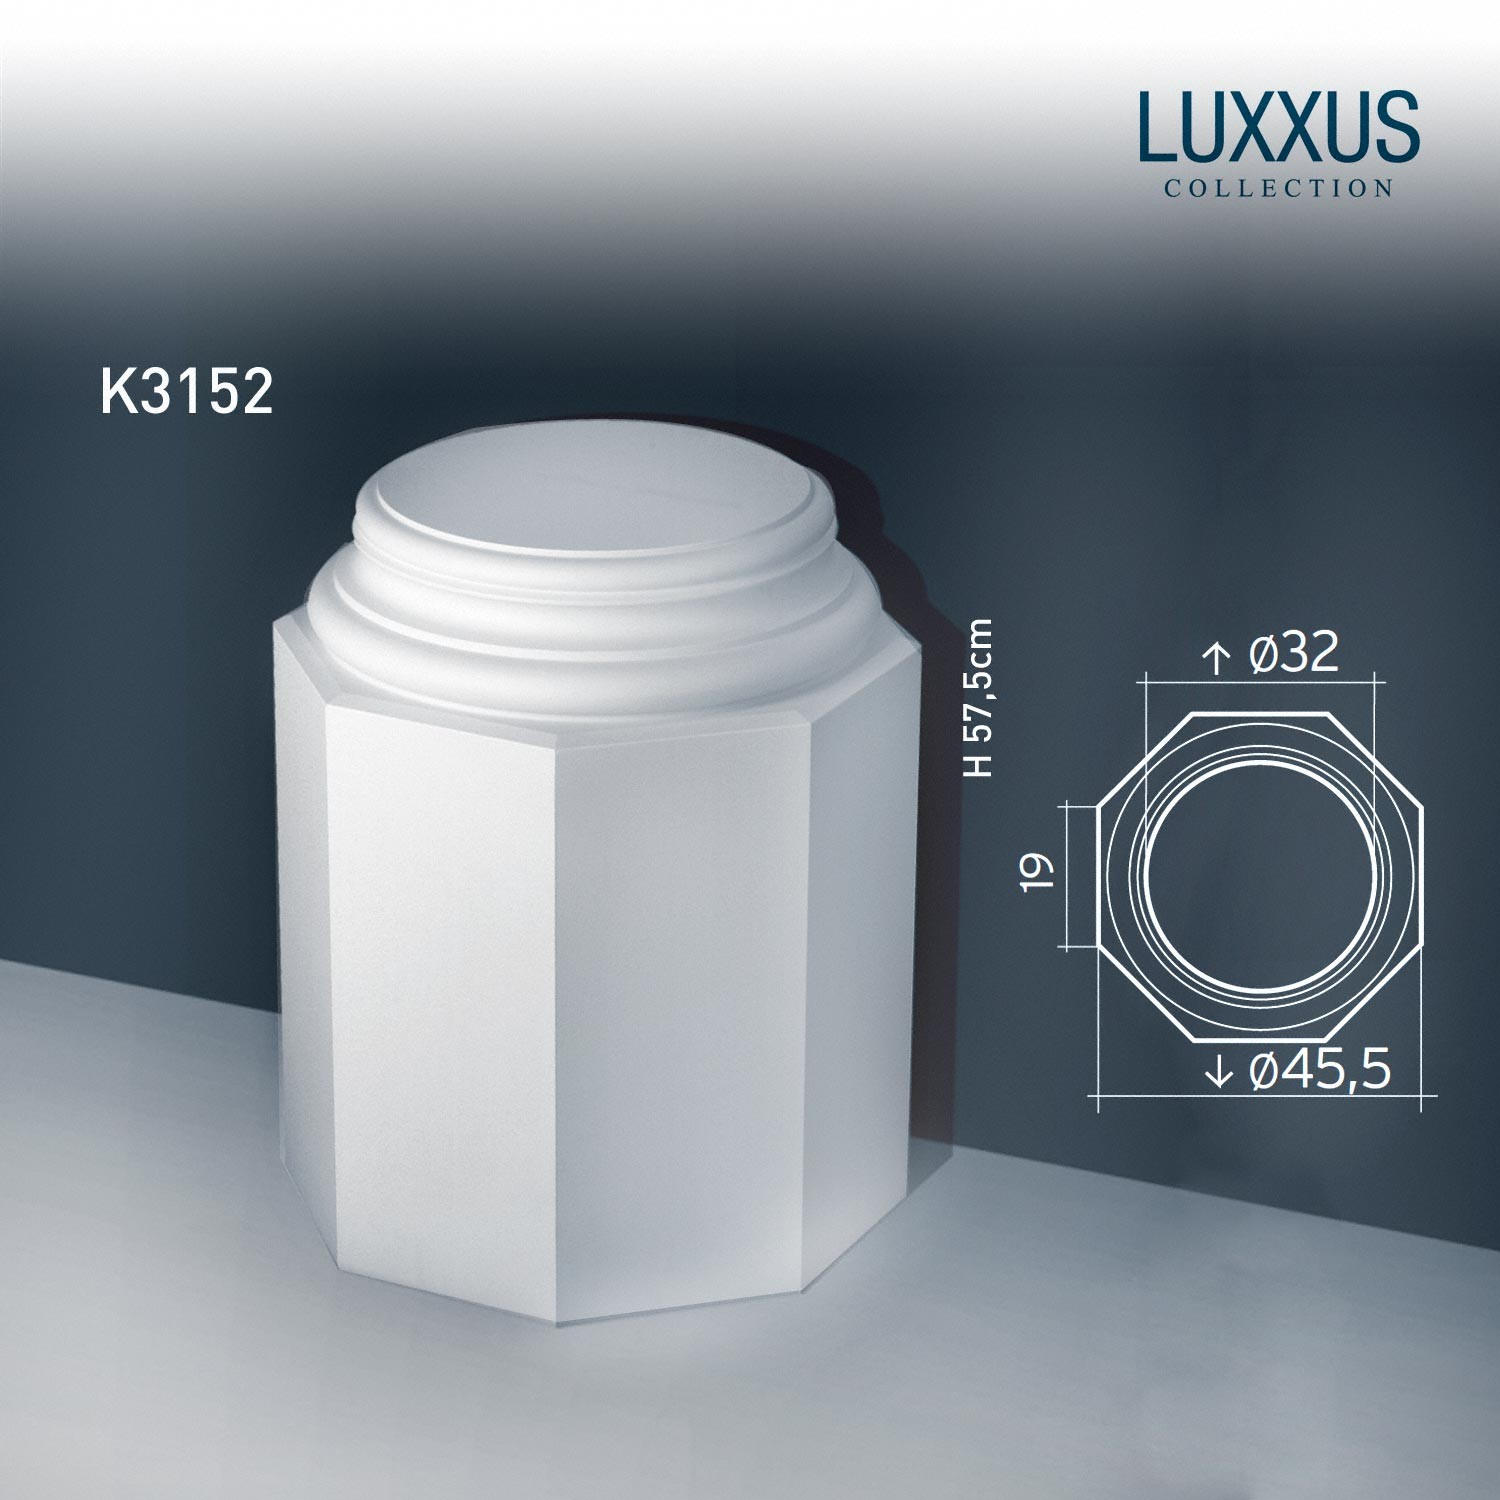 Element Decorativ Baza Coloana Luxxus K3152 Orac D